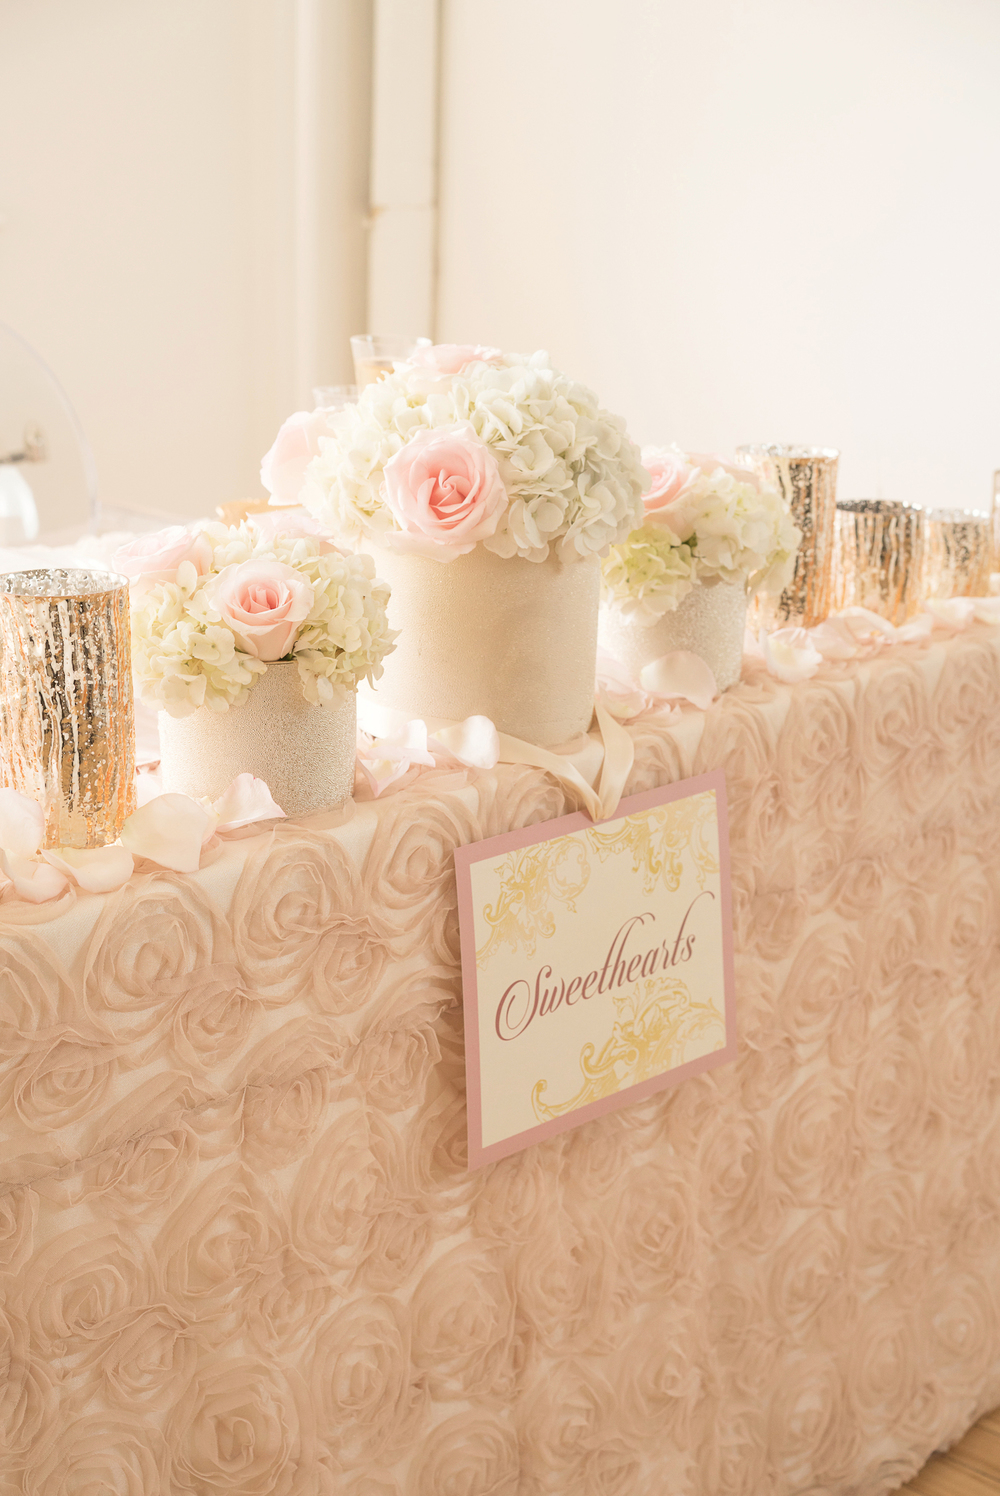 Blush Pink Sweetheart Wedding Tablescape with Flowers and Candles / design by Madeline's Weddings and Events / photo by AMC Studio